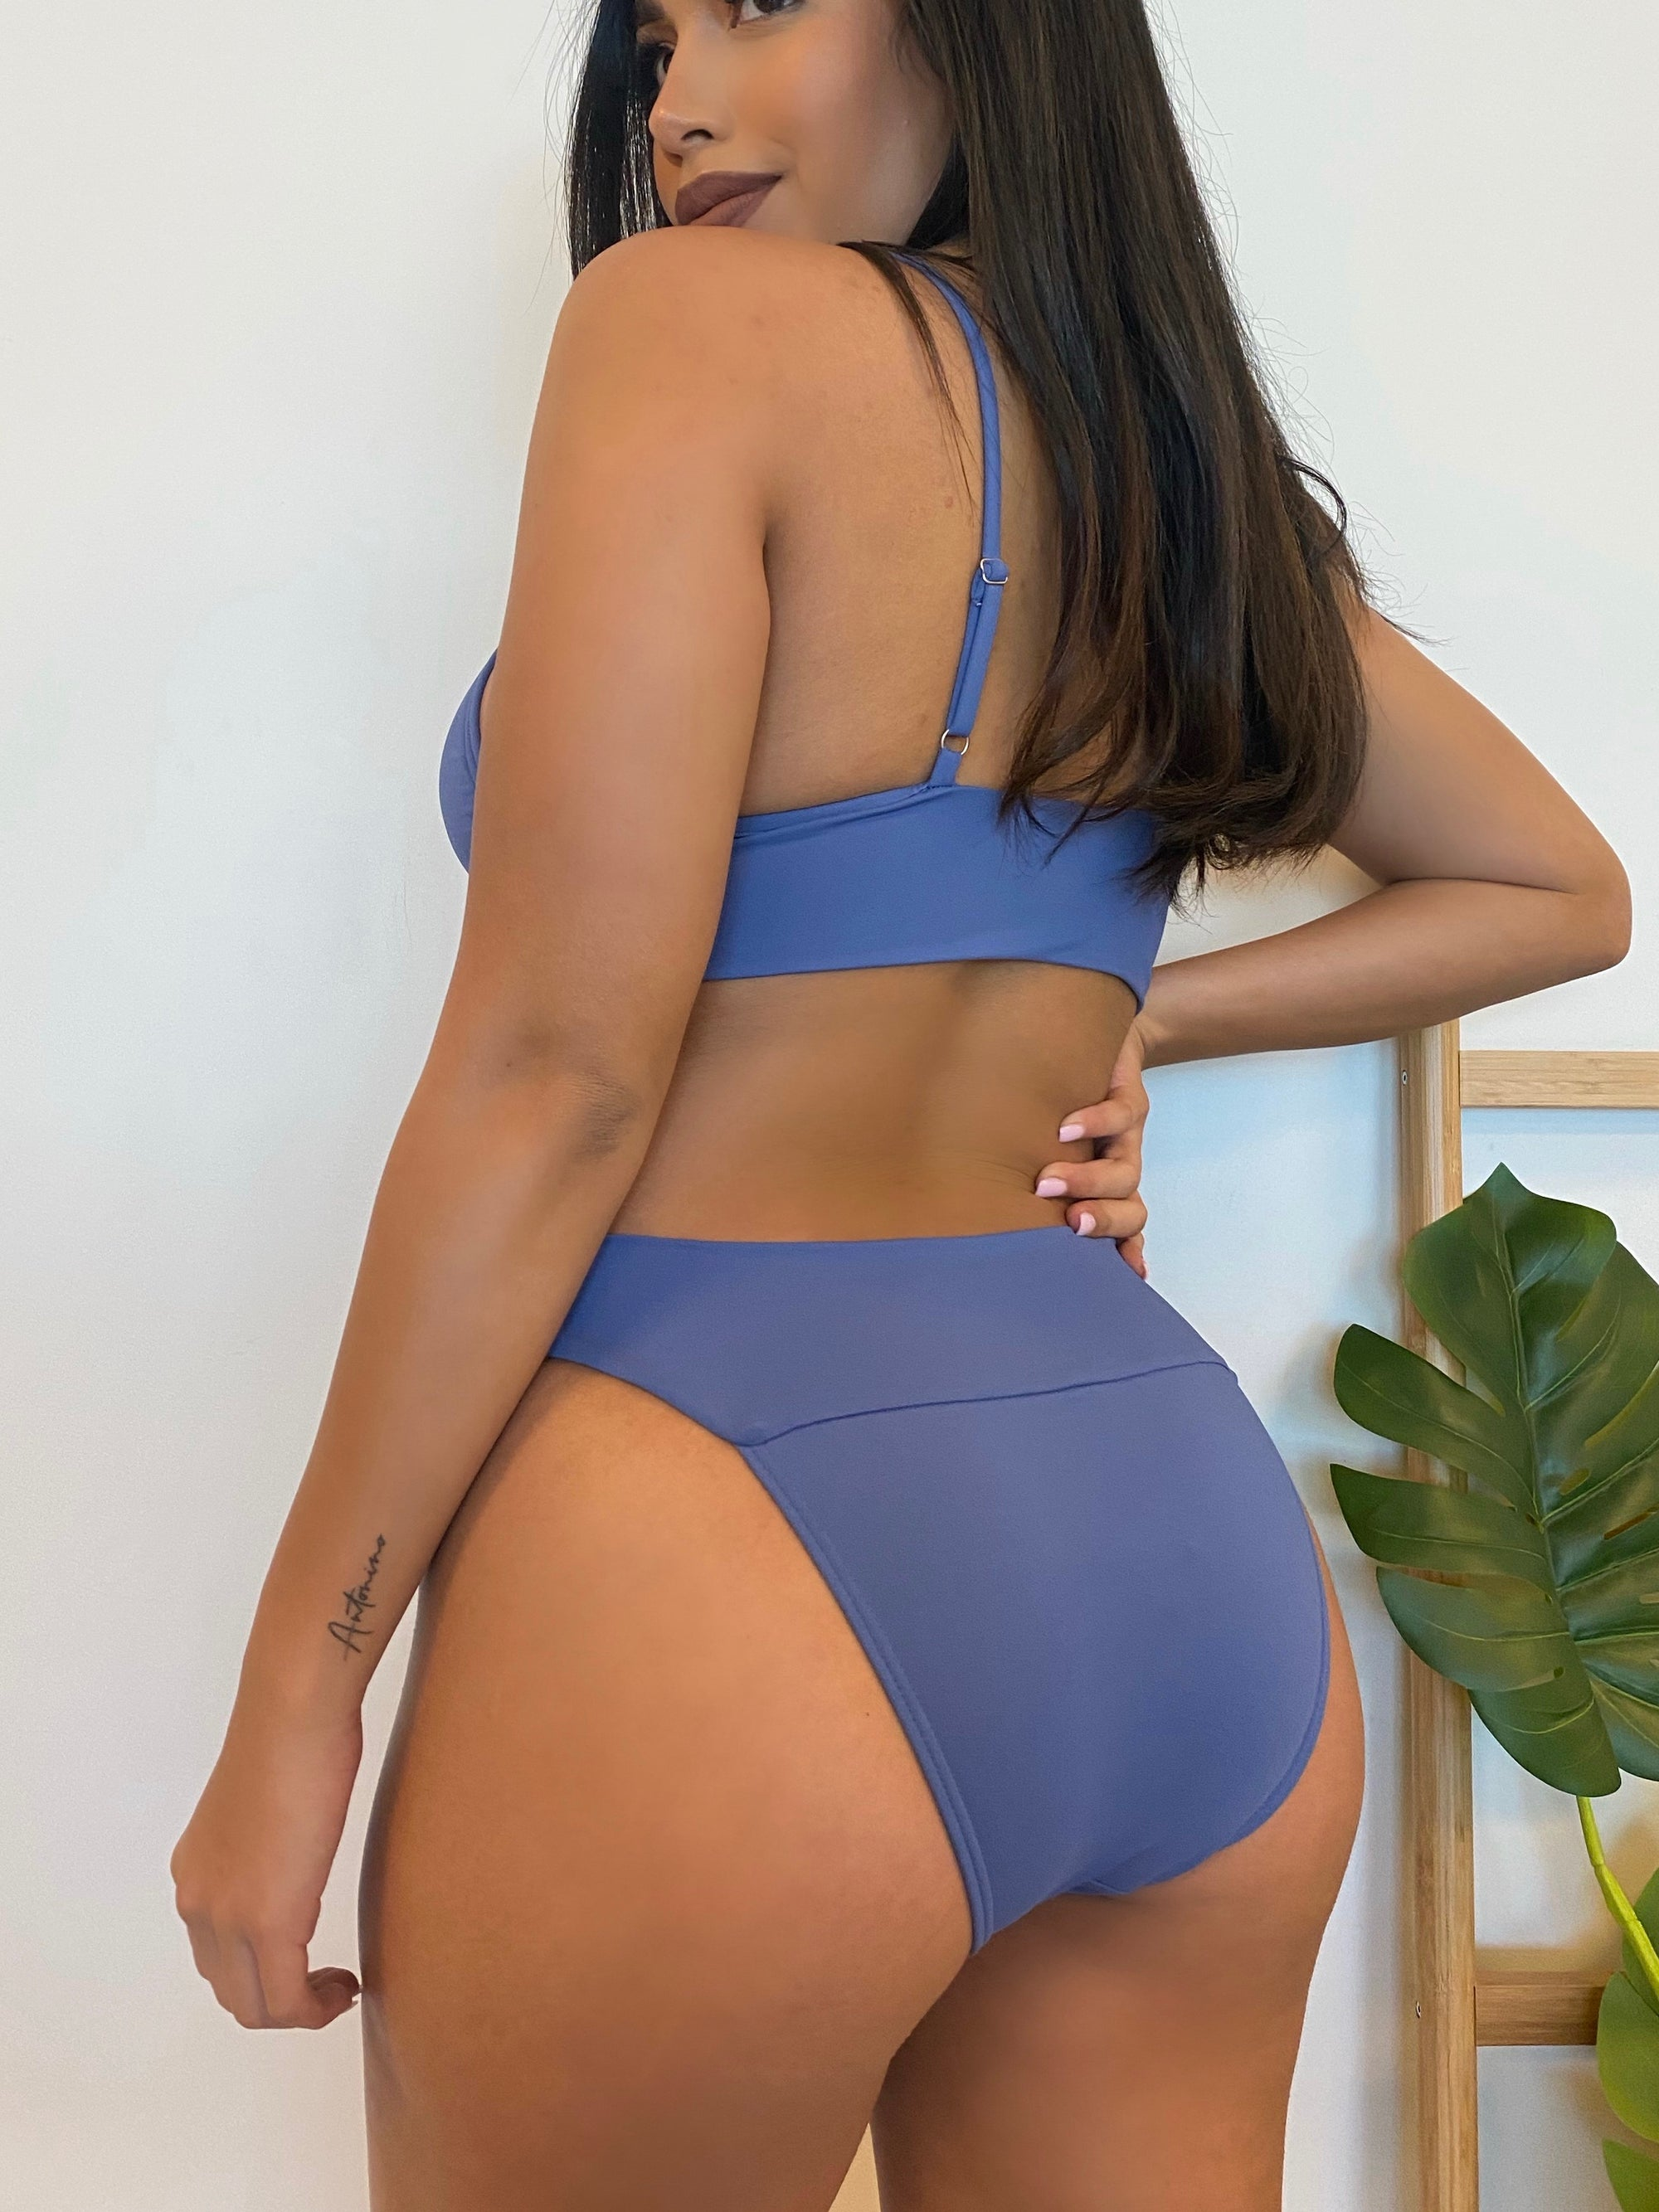 blue 2 piece bathing suit, v cut top, high rise bottoms, cheeky bottoms, adjustable straps